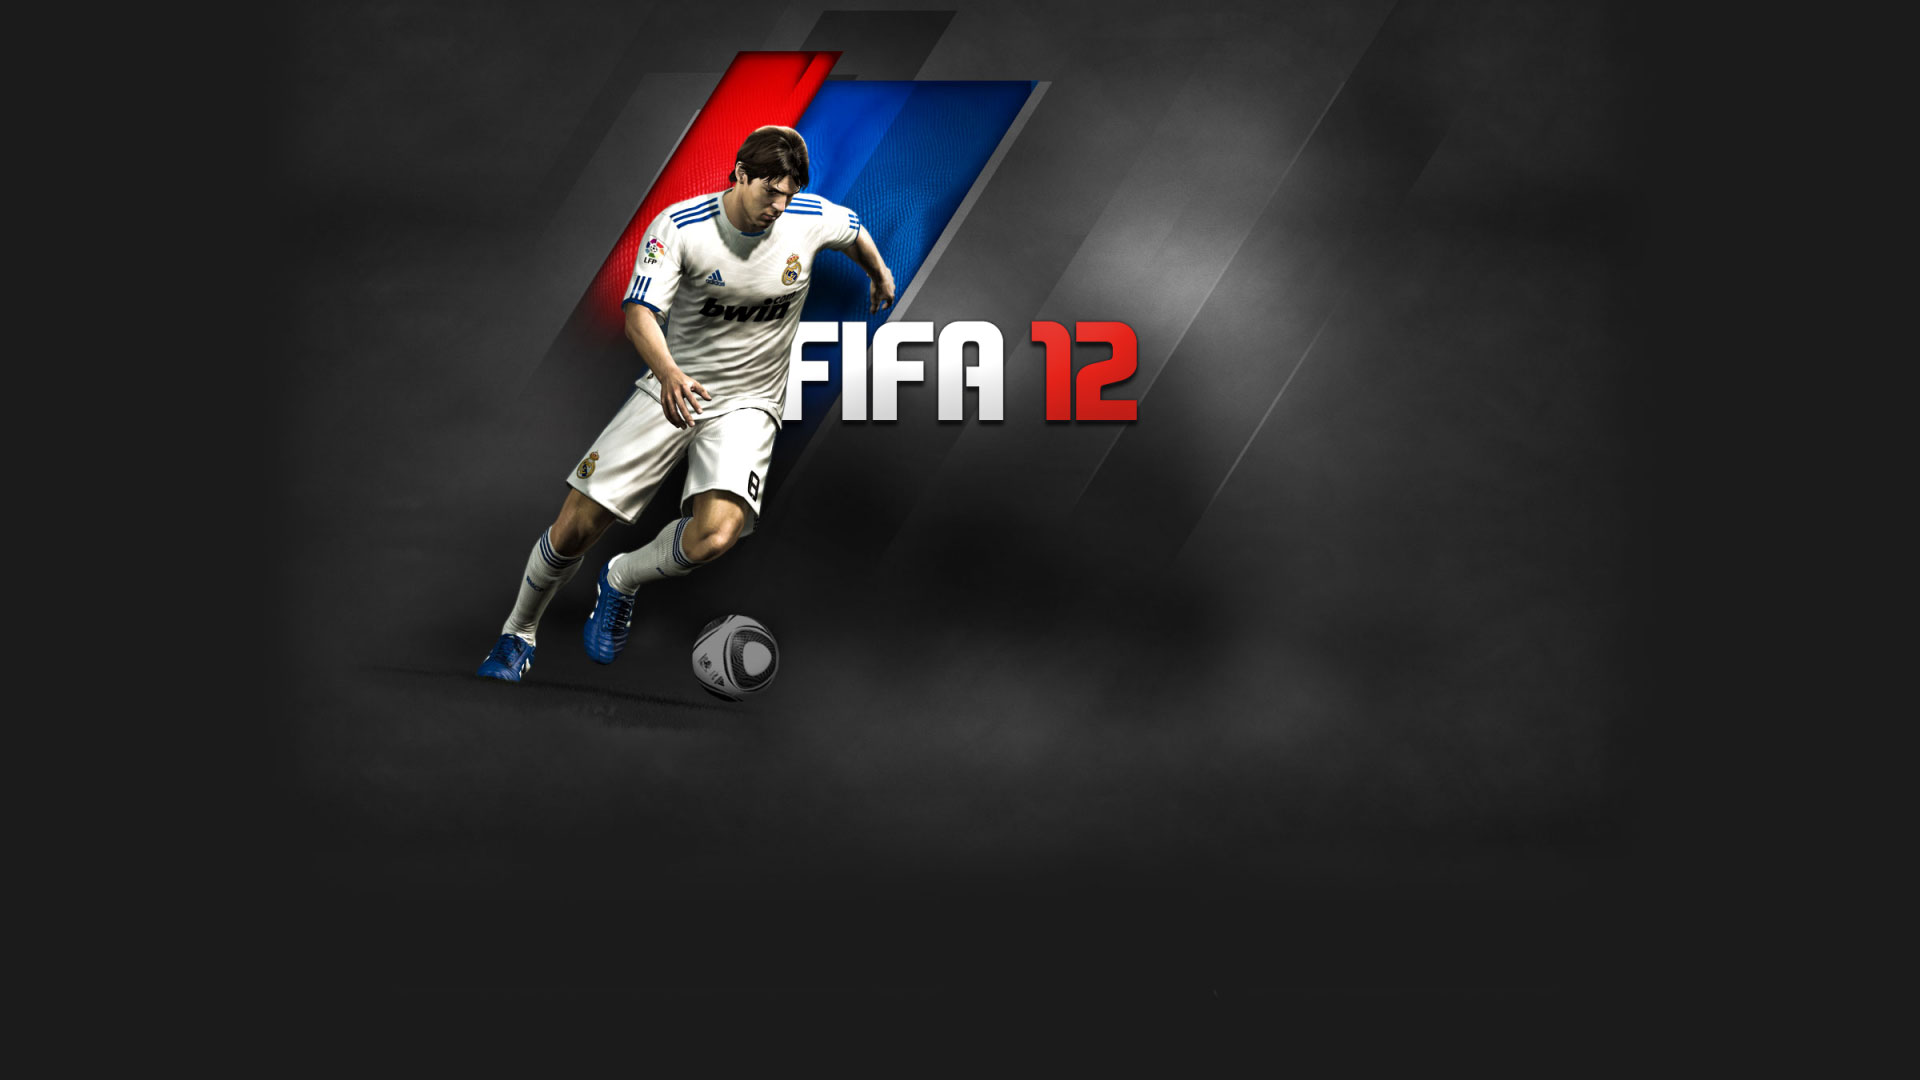 Ricardo Kaka Wallpapers Hd Windows 7 Sports Theme With Fifa 12 Wallpapers